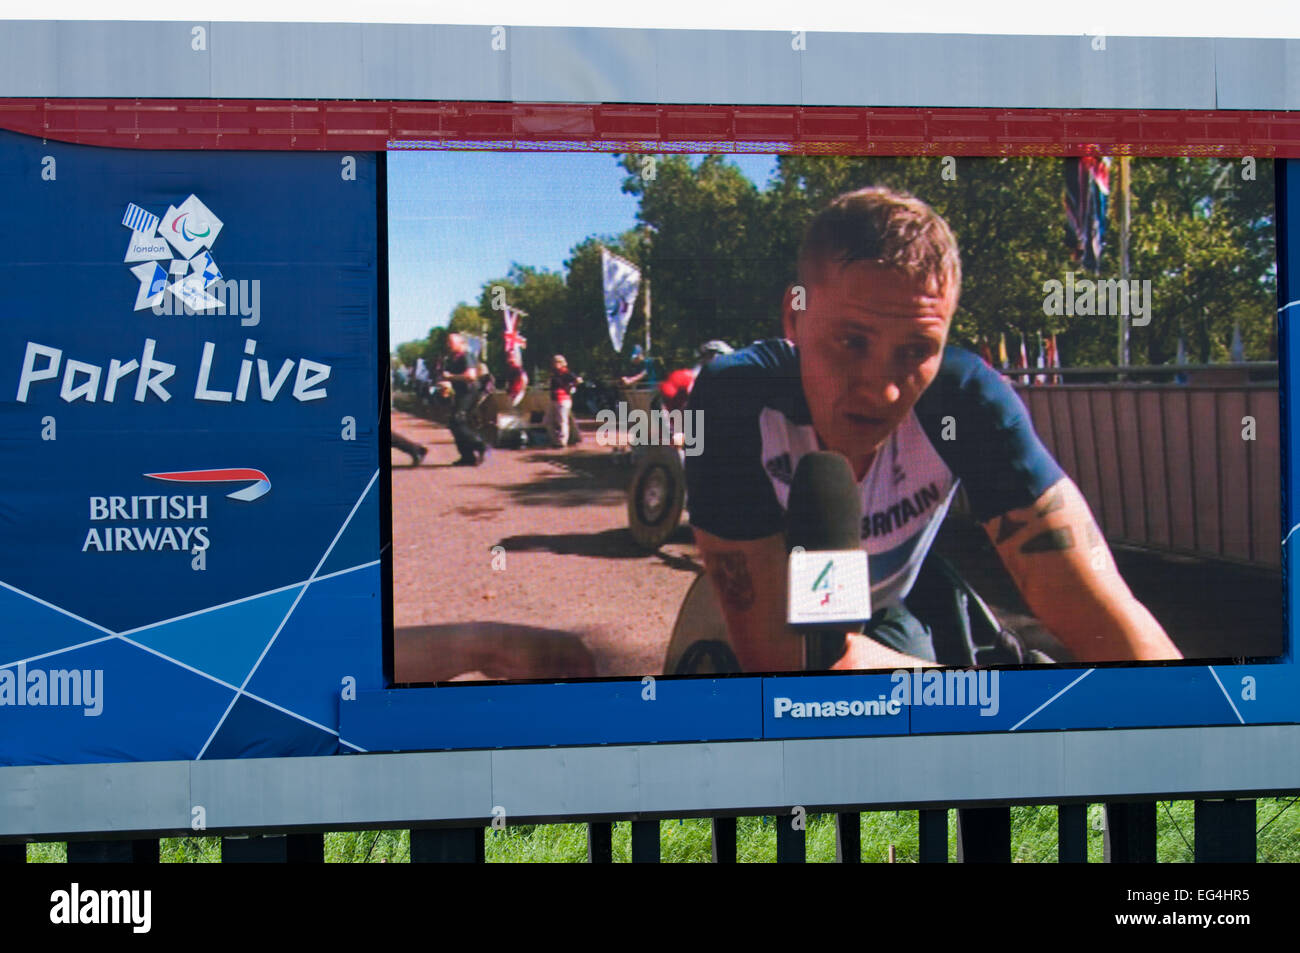 David Weir on big screen, Olympic Park, London, England - Stock Image